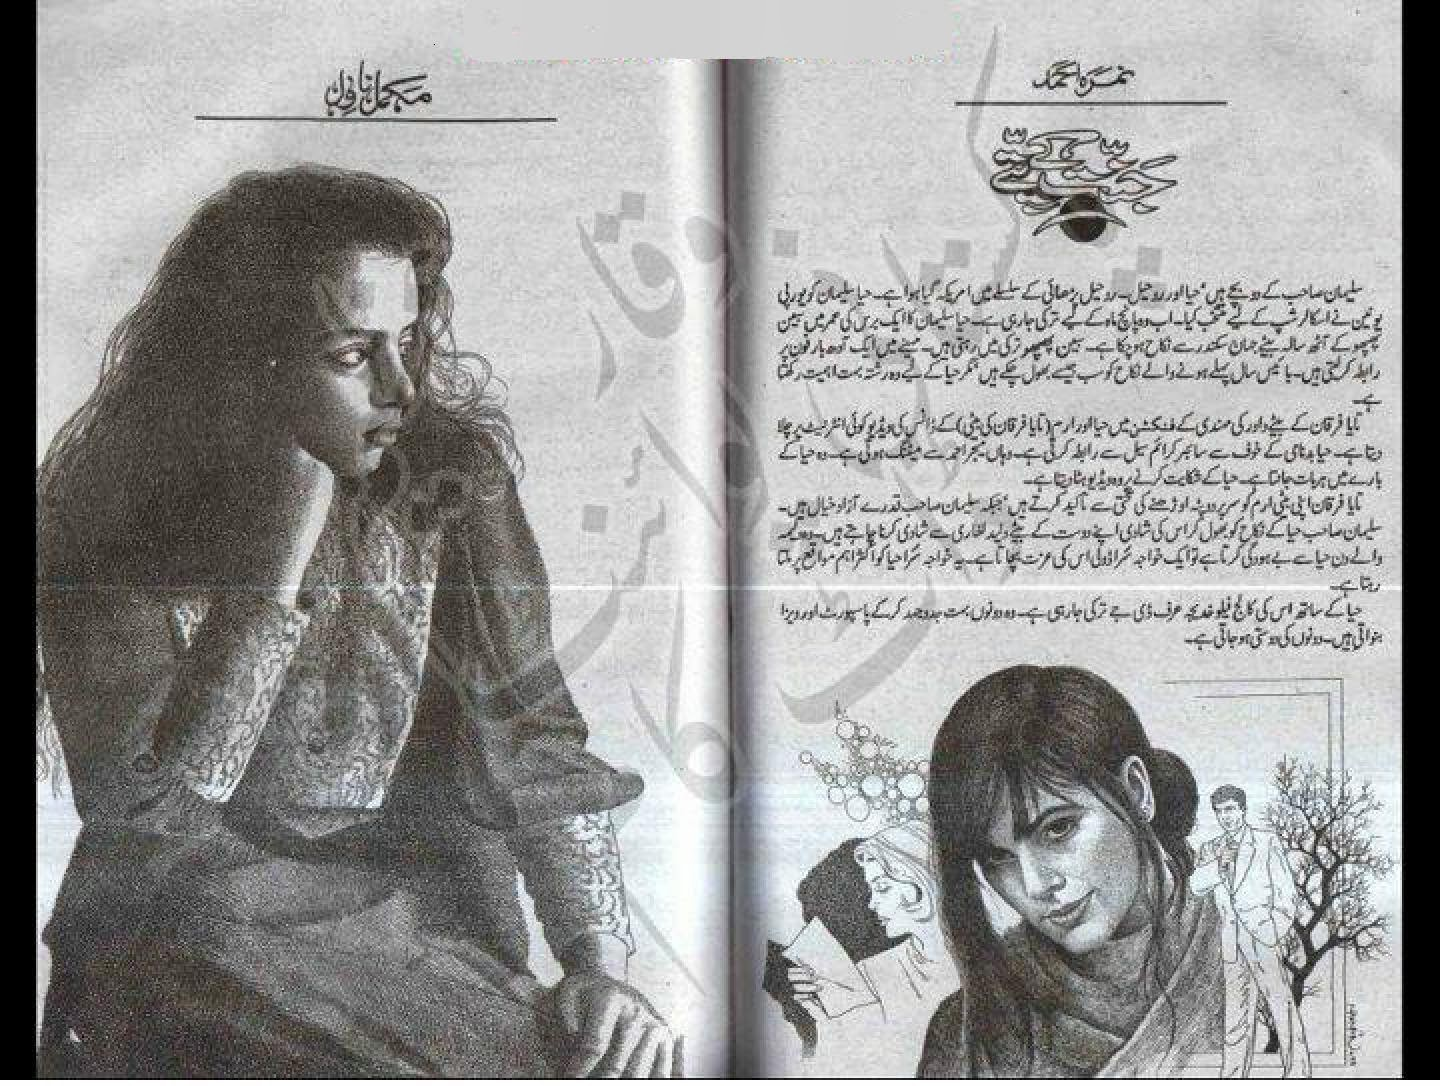 jannat kay pattay by nimra ahmed episode 1 15 complete multiple files